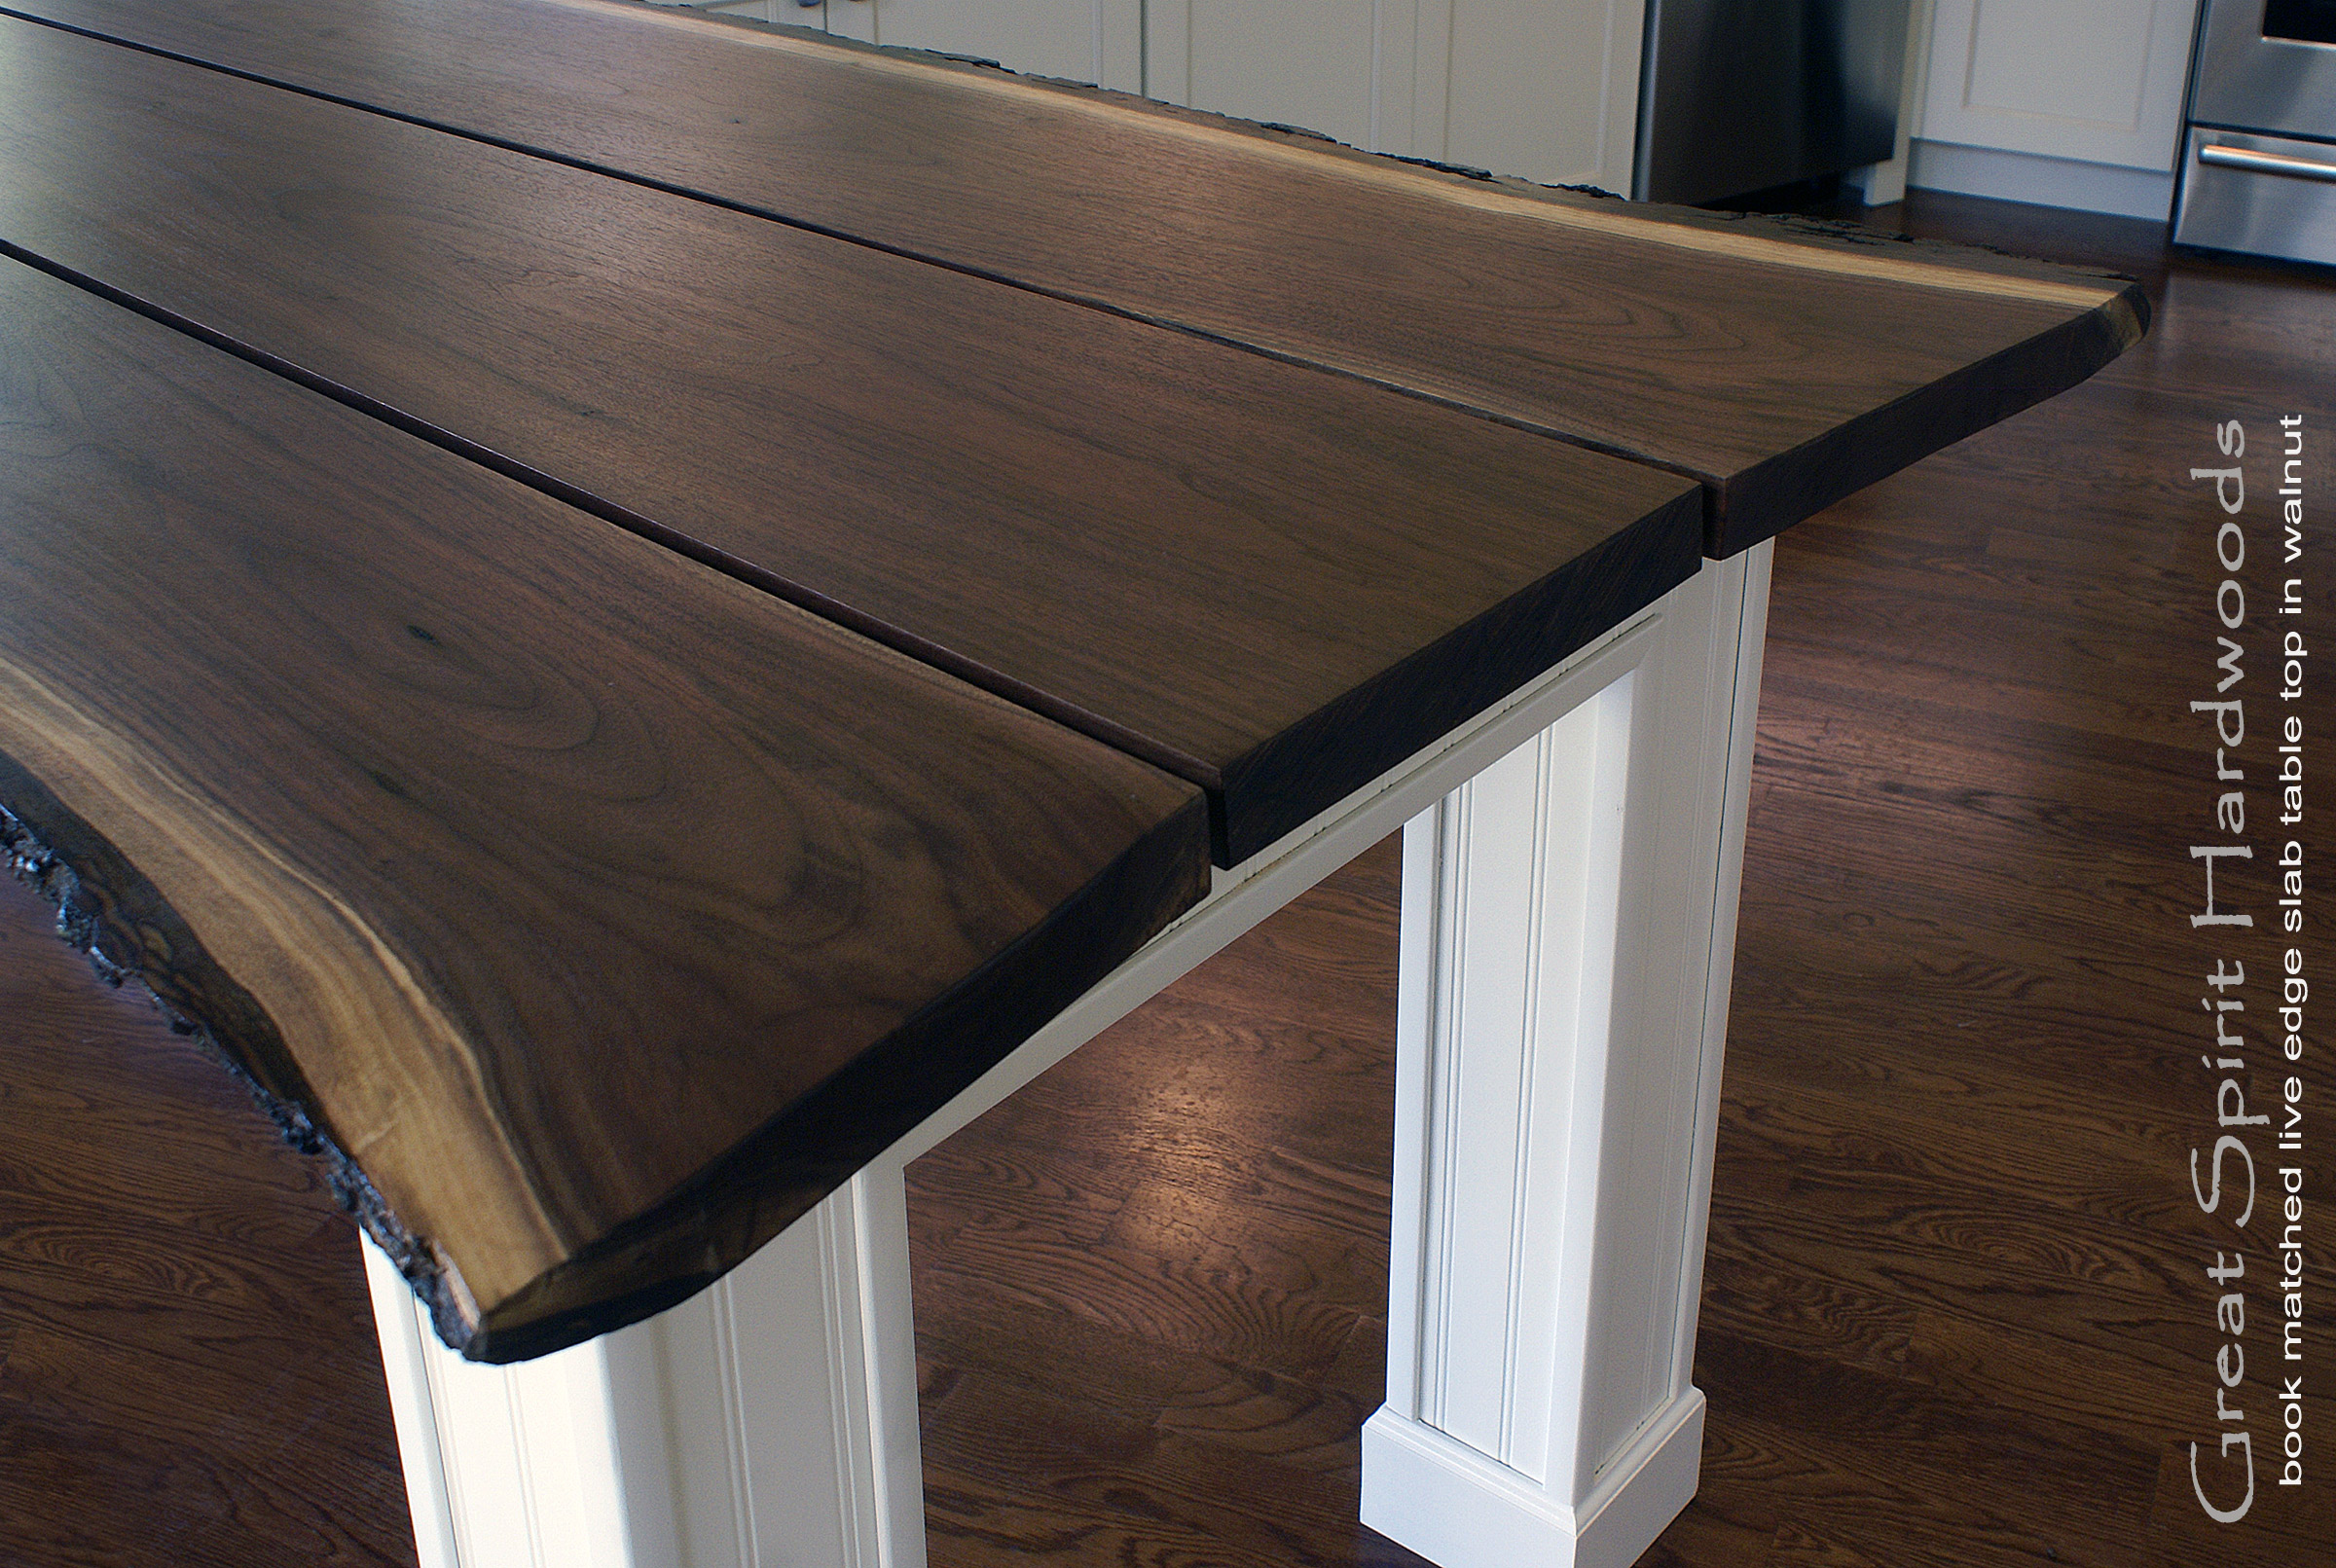 Walnut live edge dining table - Tree Shaped Slab Of Black Walnut With Wedge To Create A Stunning Live Edge Dining Table